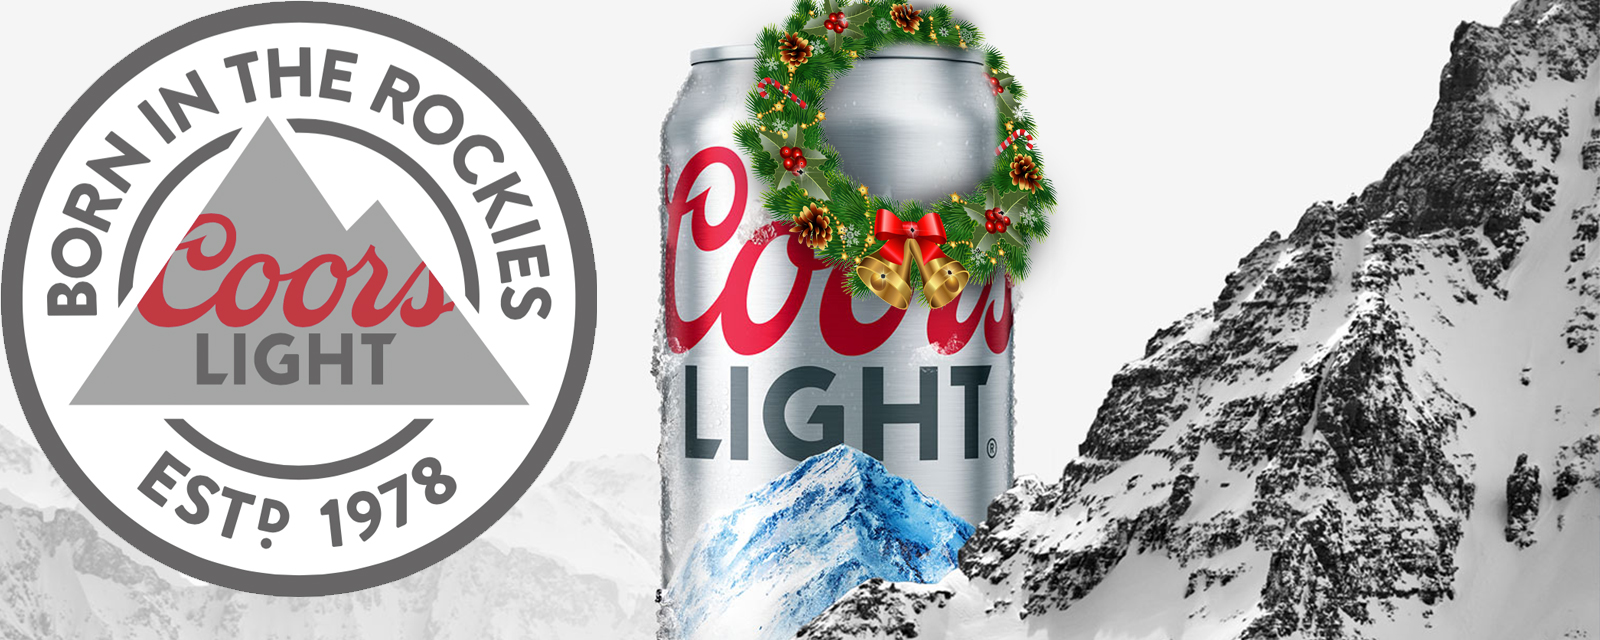 coors light holiday 2018